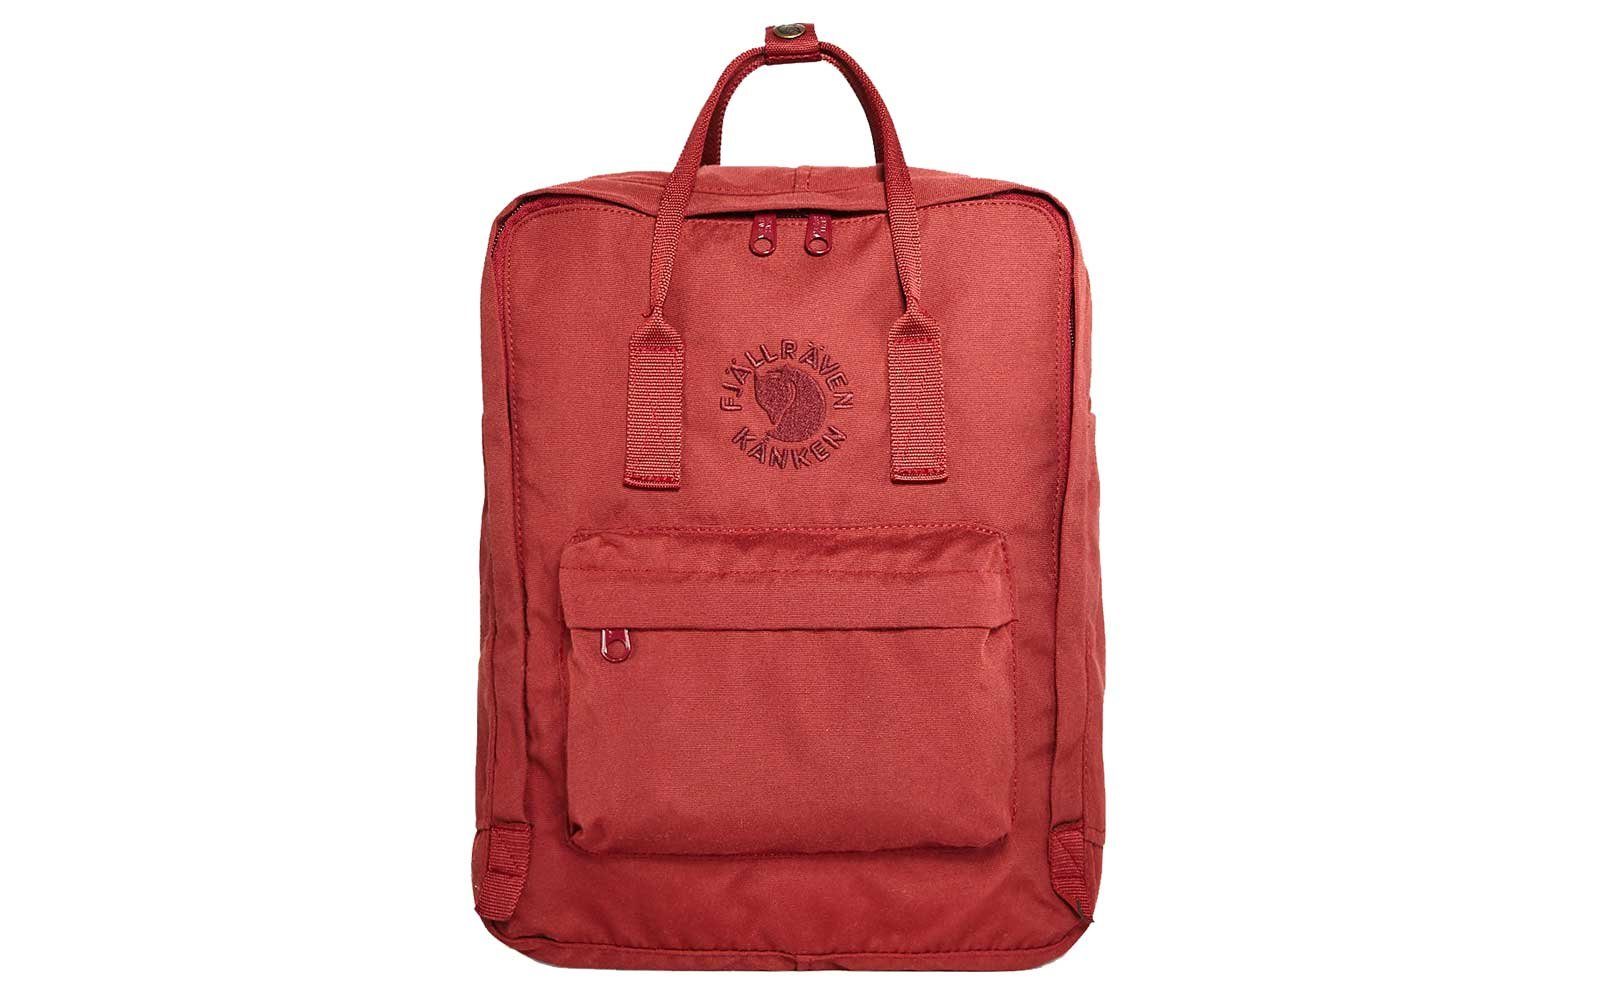 Red waterproof backpack from Fjallraven